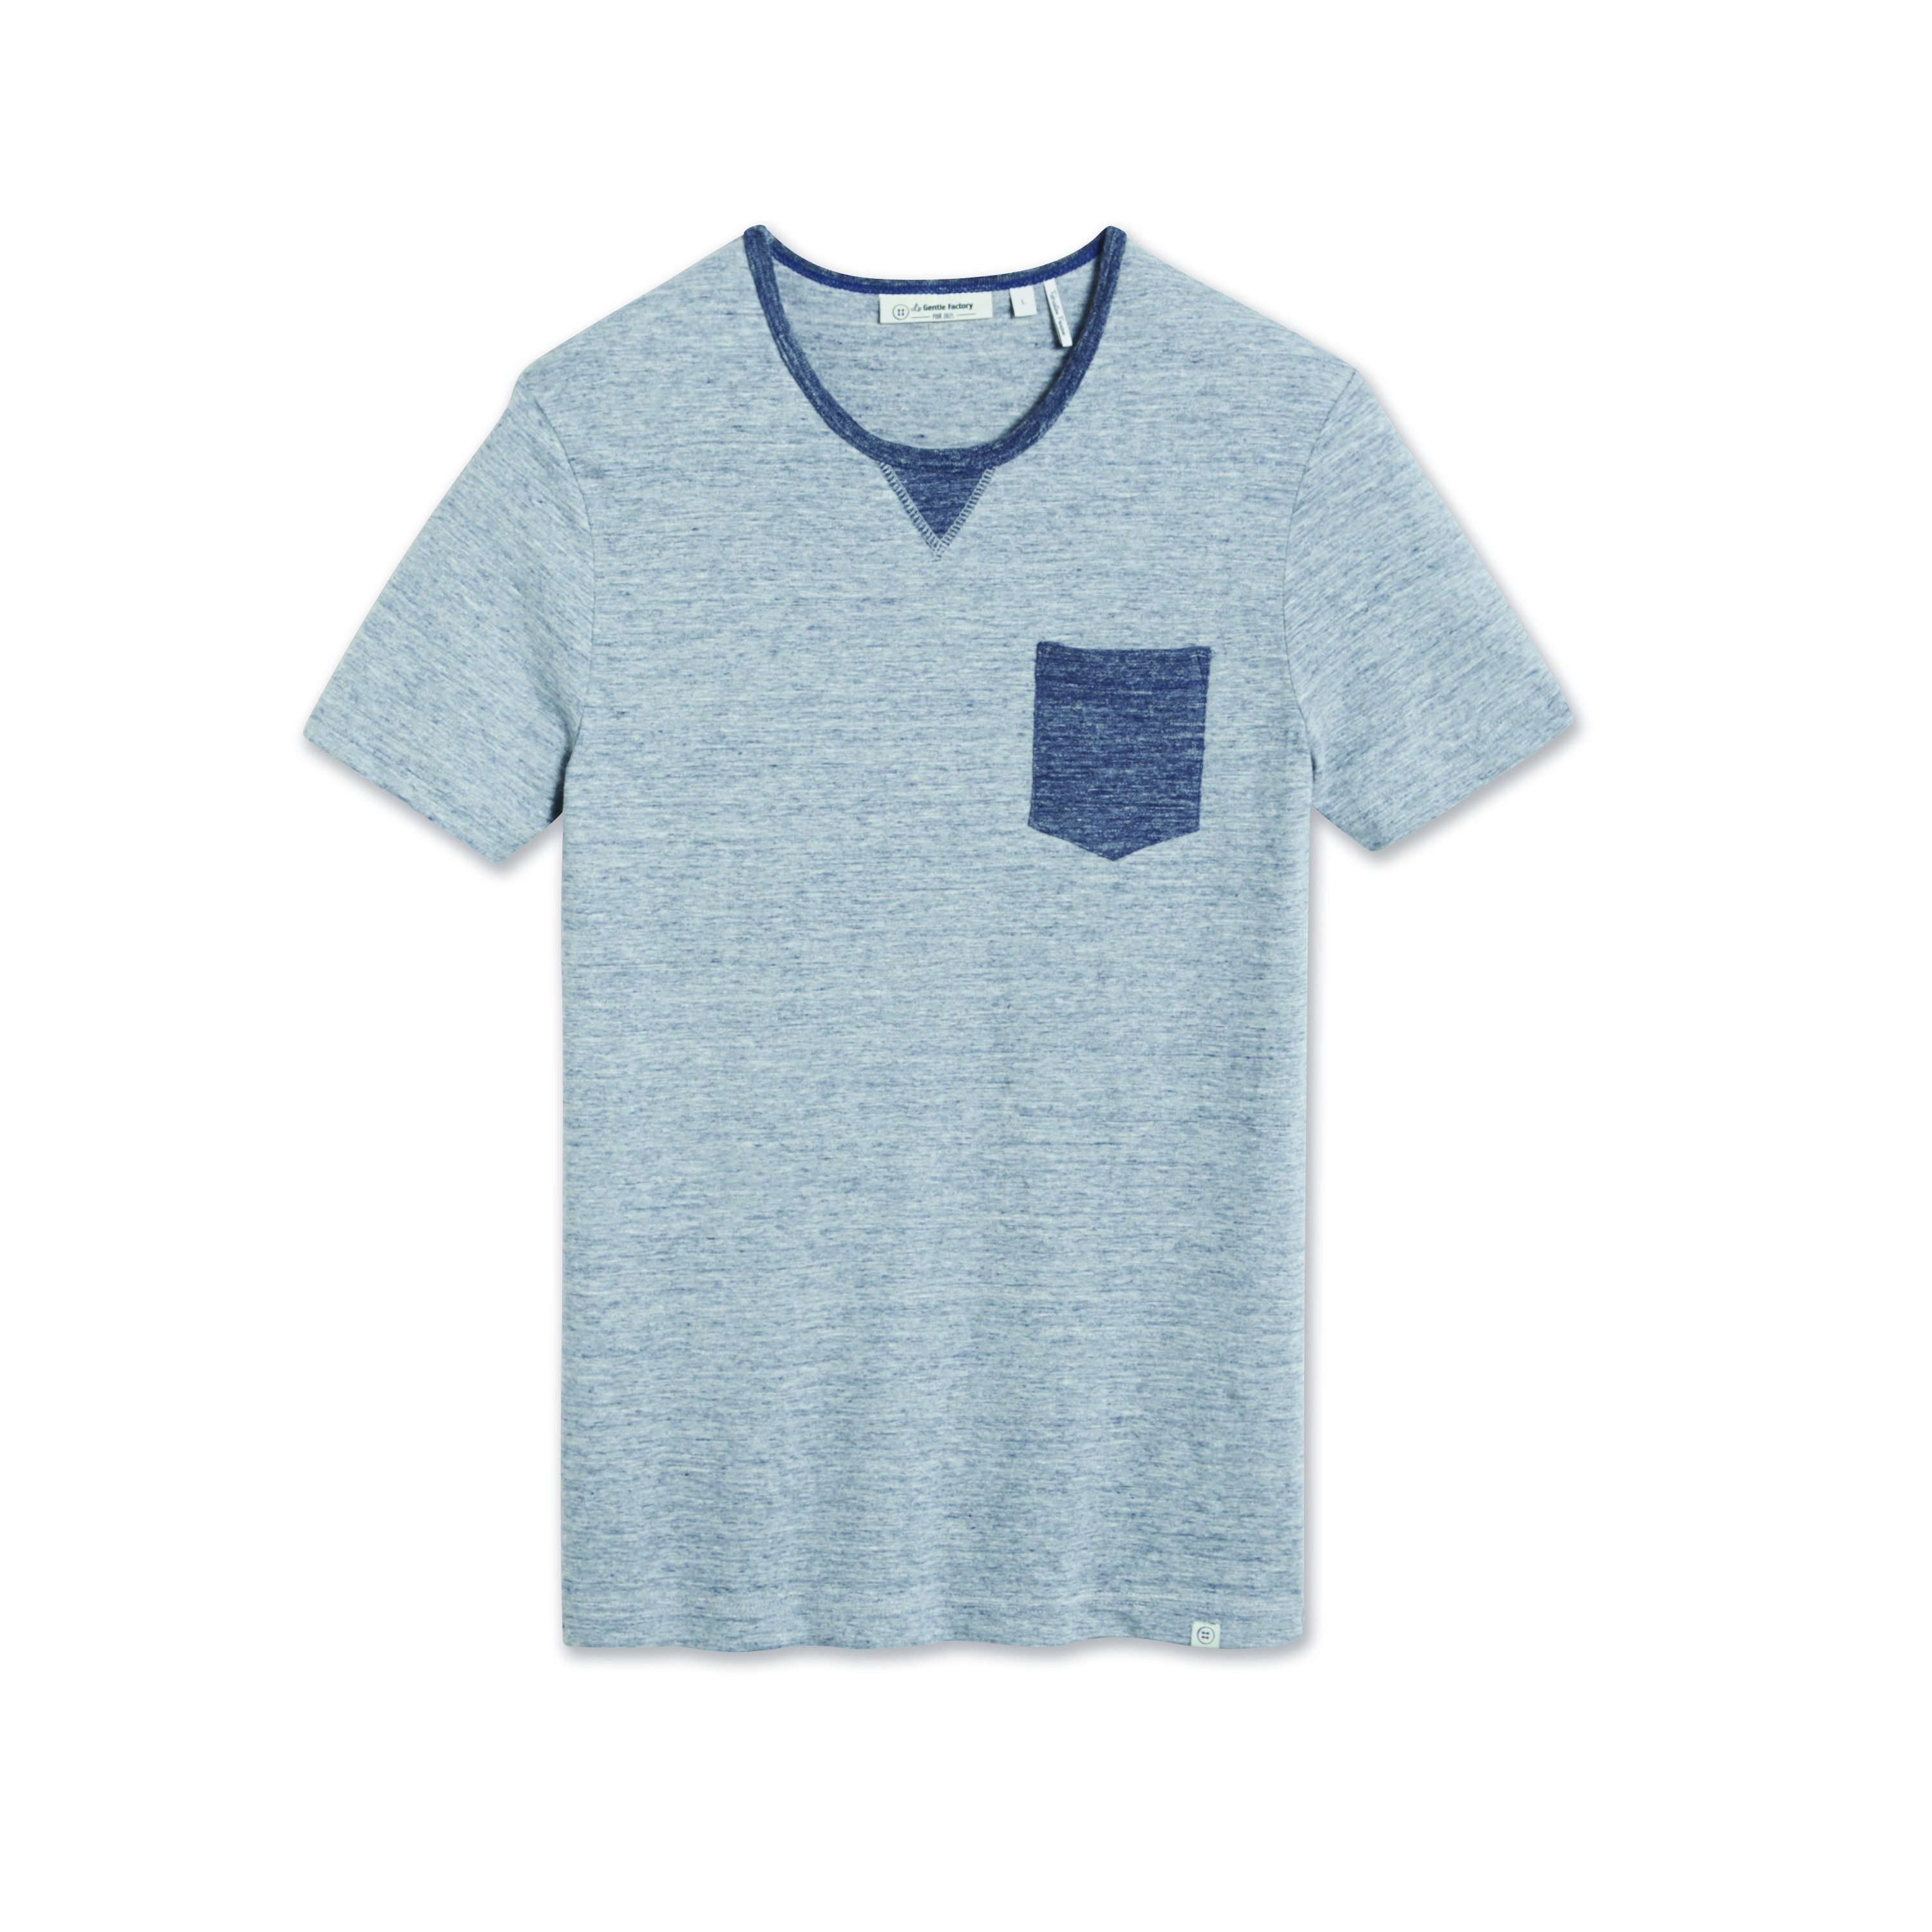 T Francaise Shirt Homme Marque T Shirt WYD9EH2I